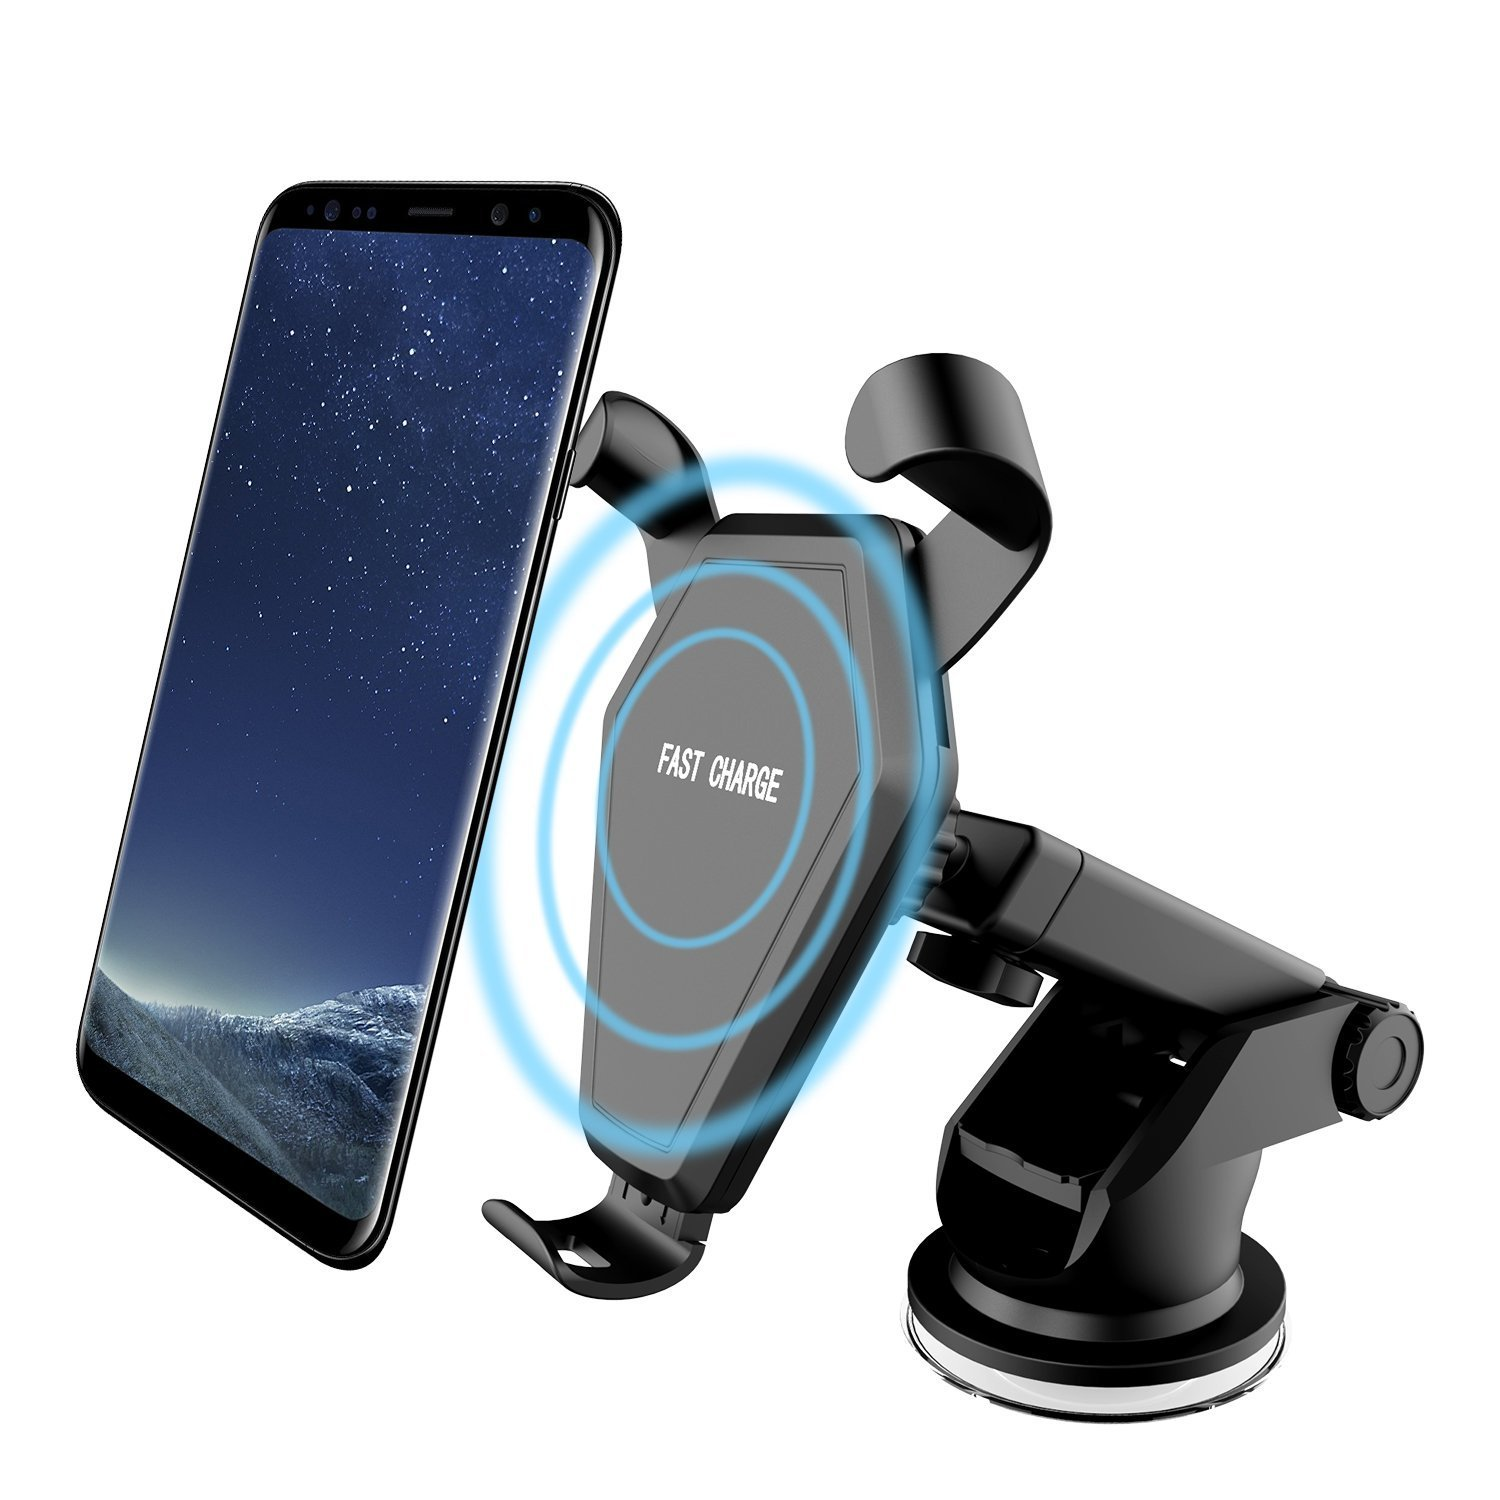 Wireless Car Charger, Qi Fast Charger Car Mount Air Vent Gravity Phone Holder for Samsung Galaxy S8/S8+/S7 Edge/S6 Edge+, Standard Charger for iPhone 8/8+/iPhone X and All Qi-Enabled Devices (Black) Beanco Tech